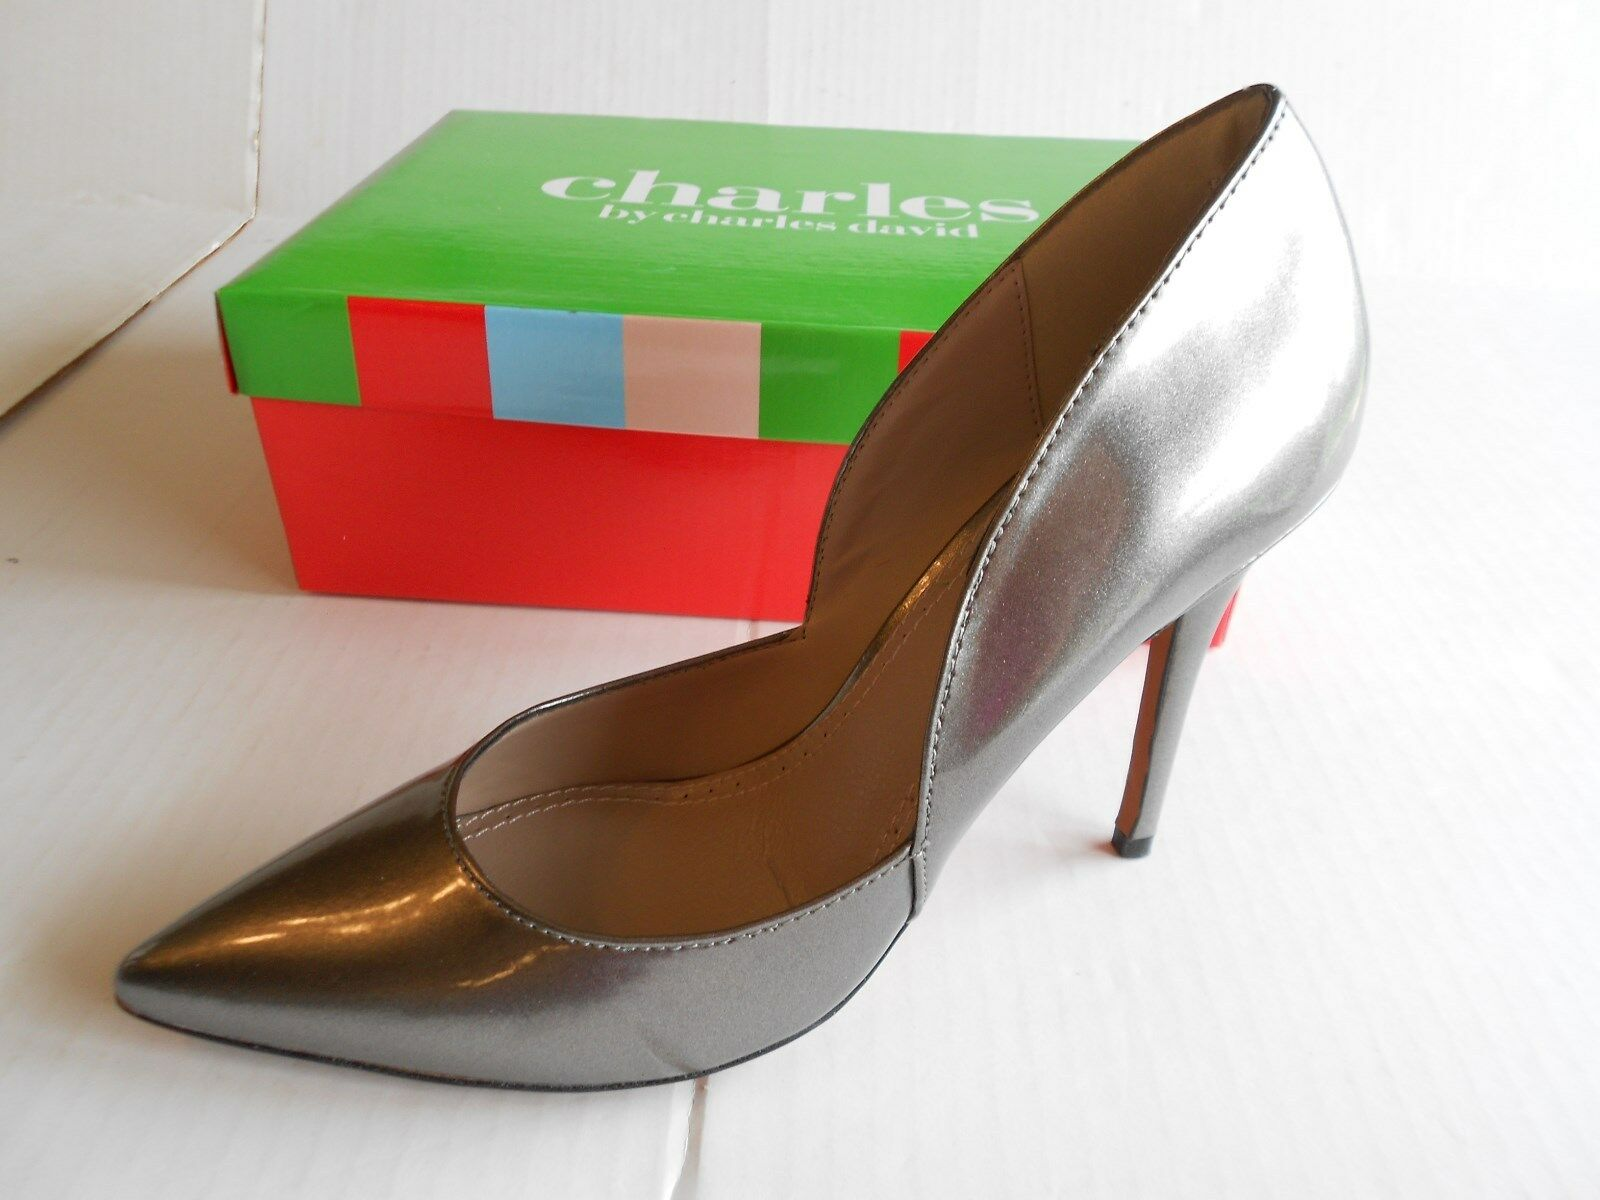 New Pointed Charles David Parker Patent Pointed New Toe Stiletto Heels Womens 9 Retail $99 23de24